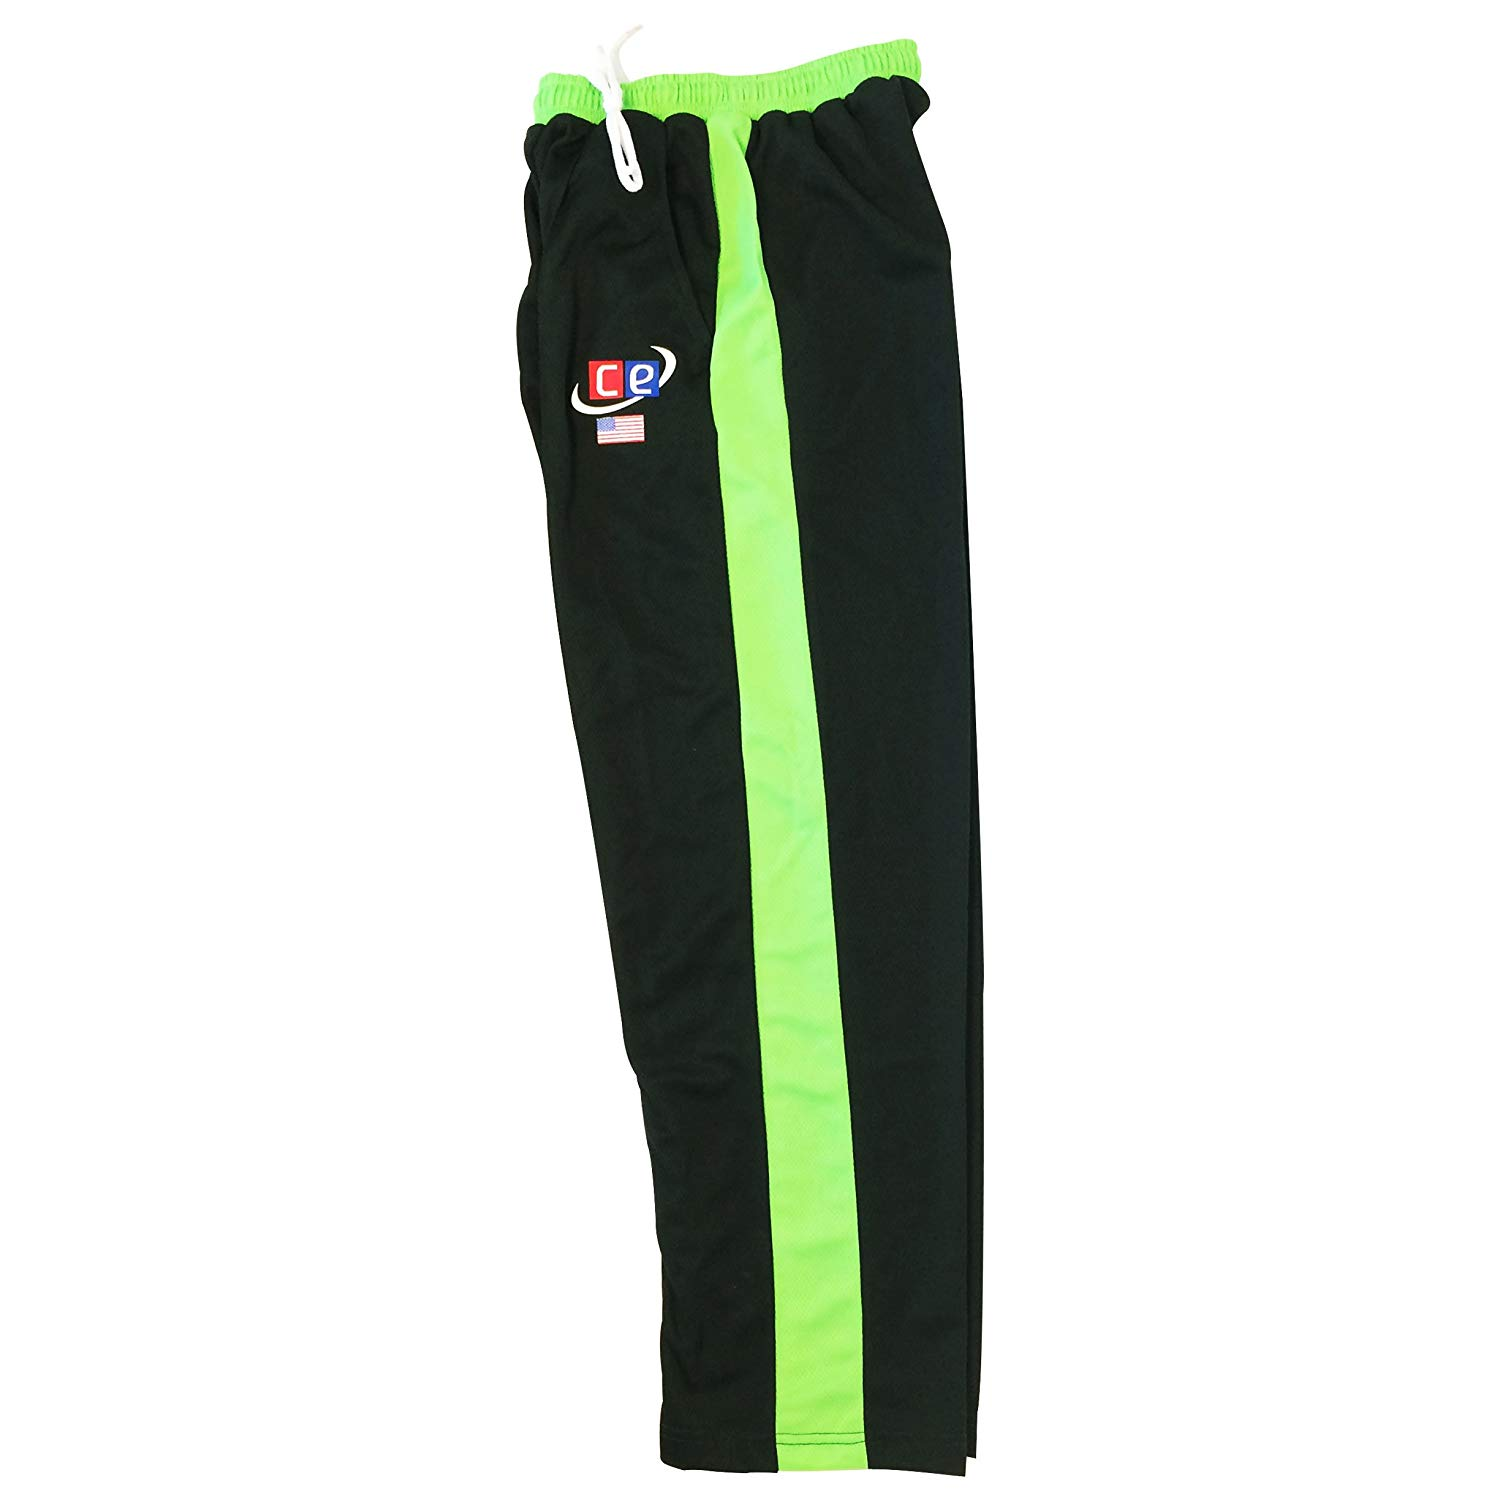 CE Colored Cricket Kit Shirts & Pants - Pakistan Colors Lime & Forest Green- Half Sleeves (Pants, Small)